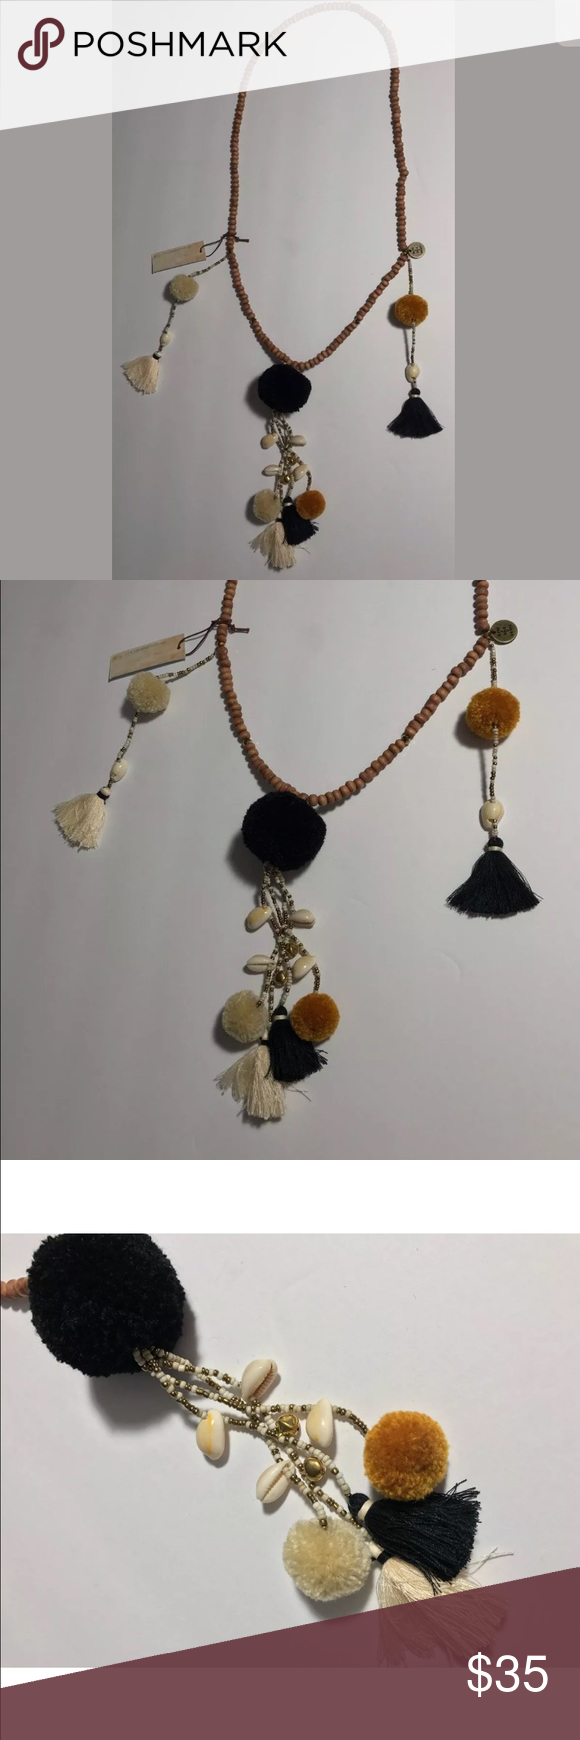 """Mare sole amore long necklace tassels shells boho Mare Sole Amore New with tags Wood beads with shells, pom poms and tassels I have others that match in my posh store.  Length is 32"""" mare sole amore Jewelry Necklaces"""